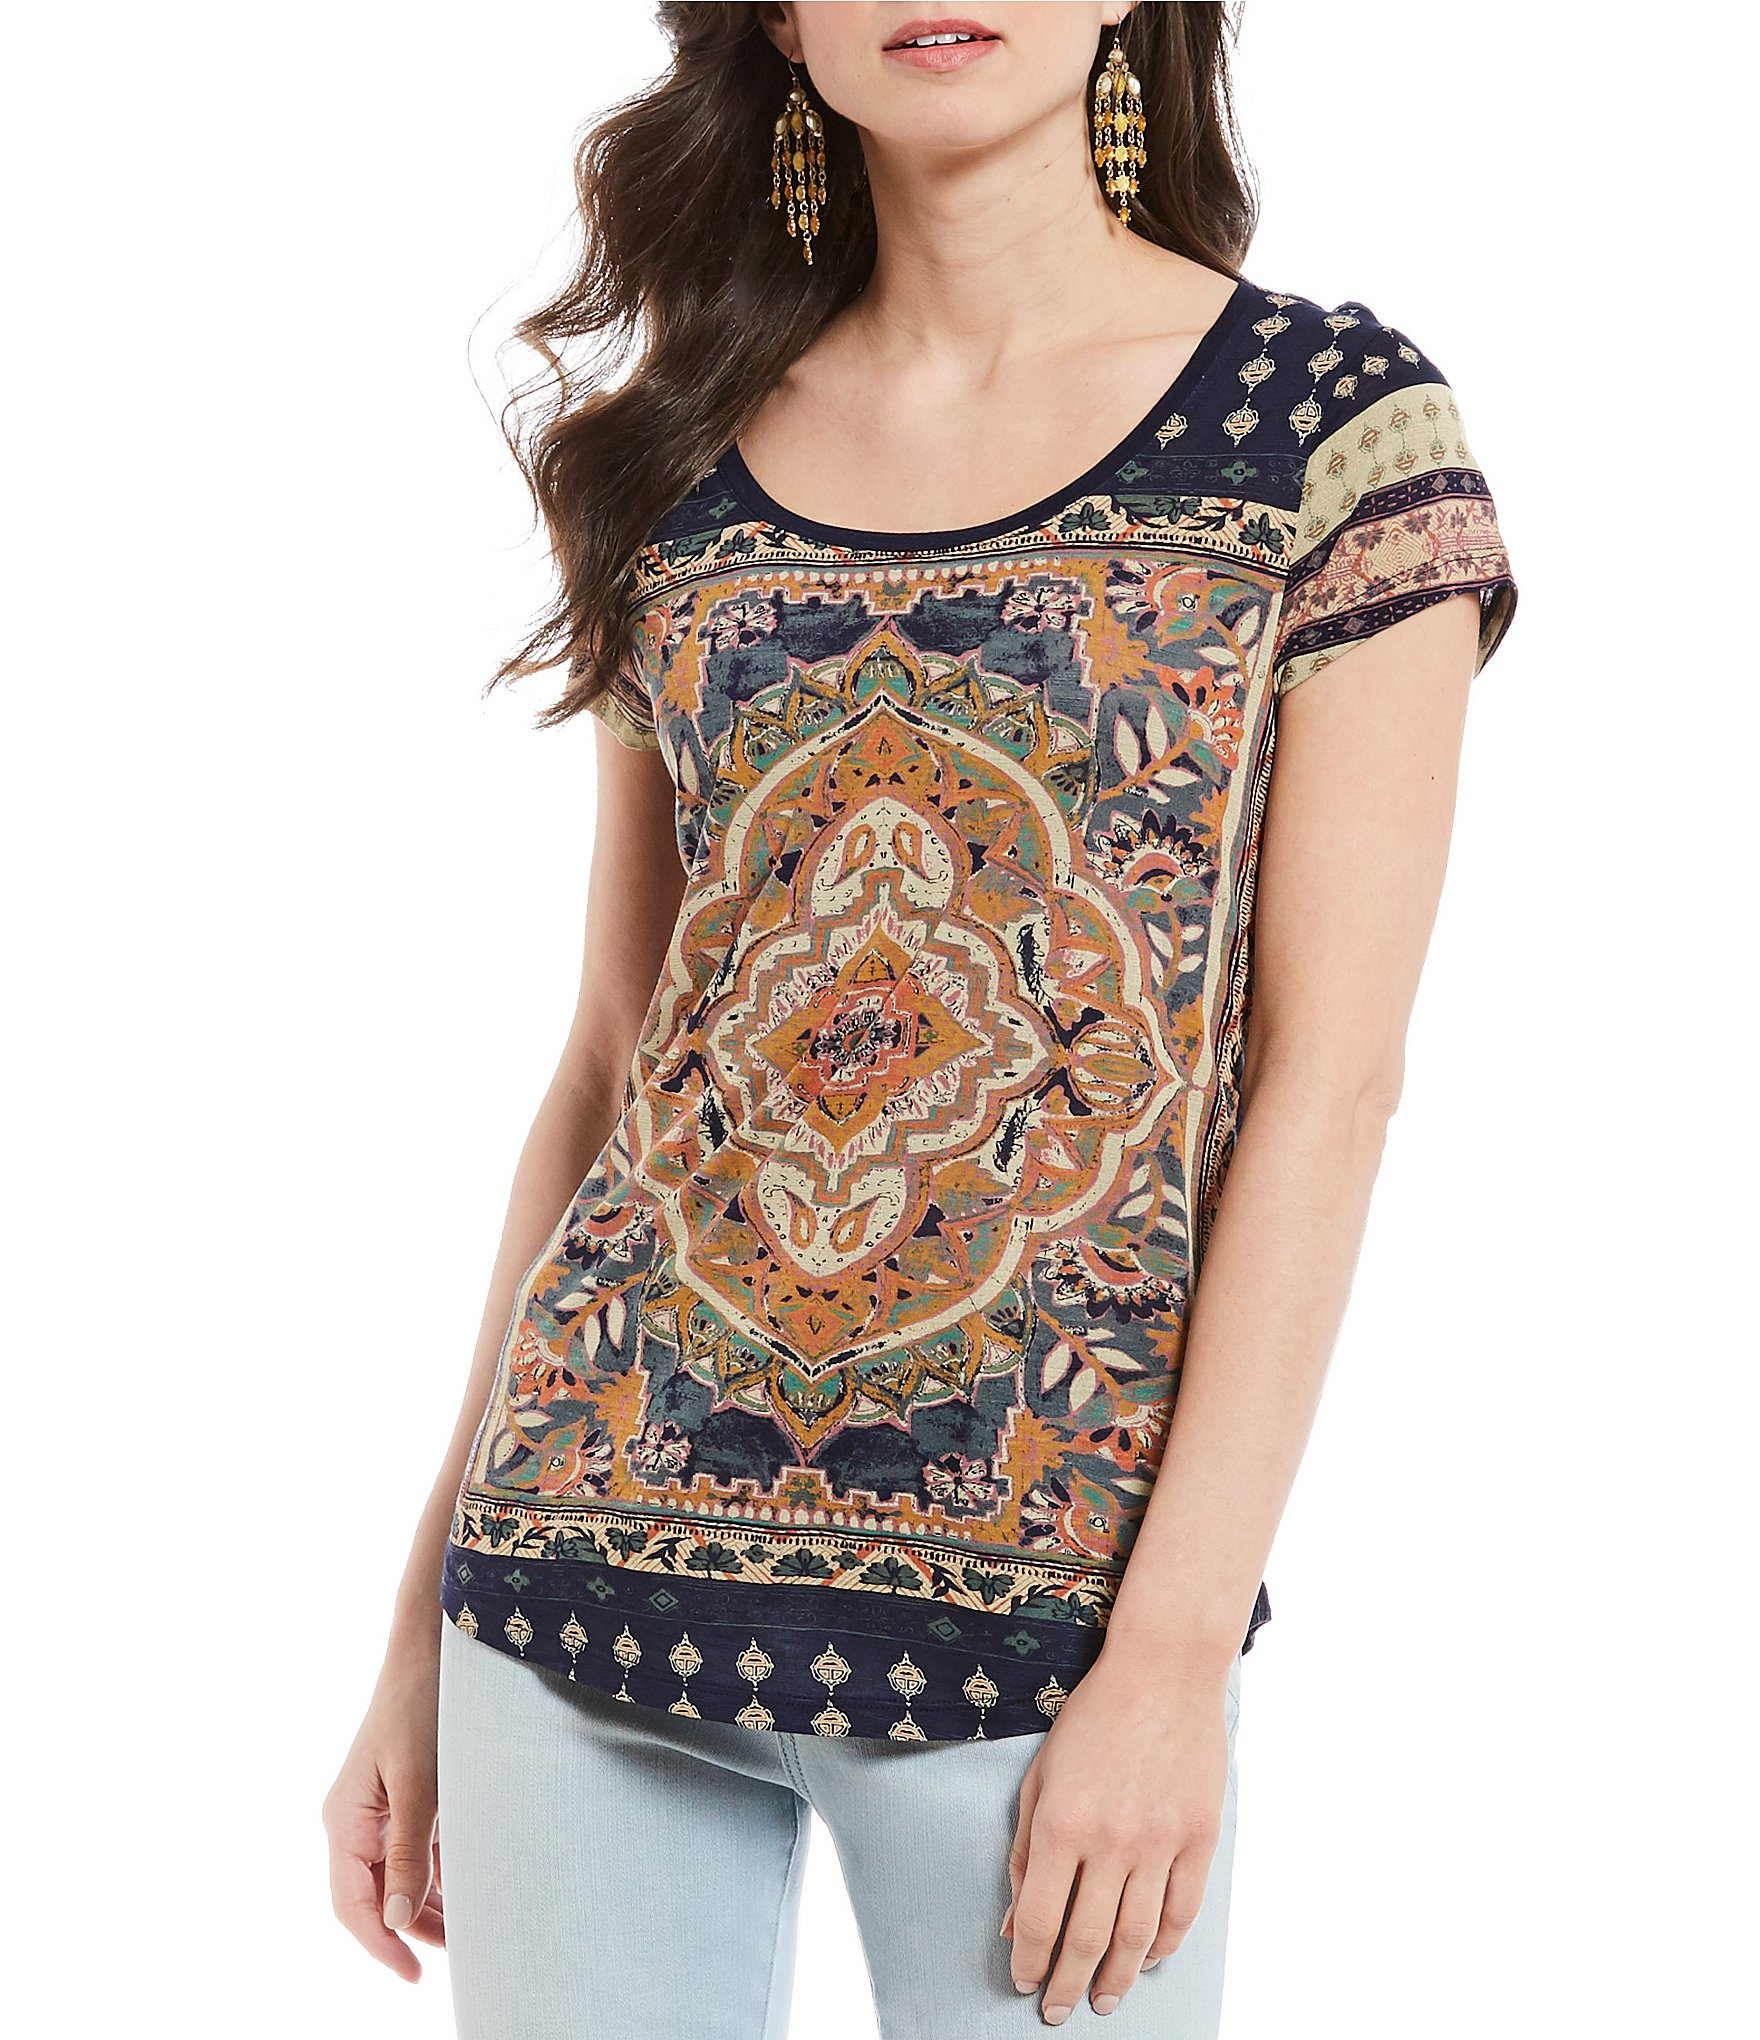 04ccba4dbefef Lucky Brand Persian Carpet Graphic Scoop Neck Short Sleeve Tee ...